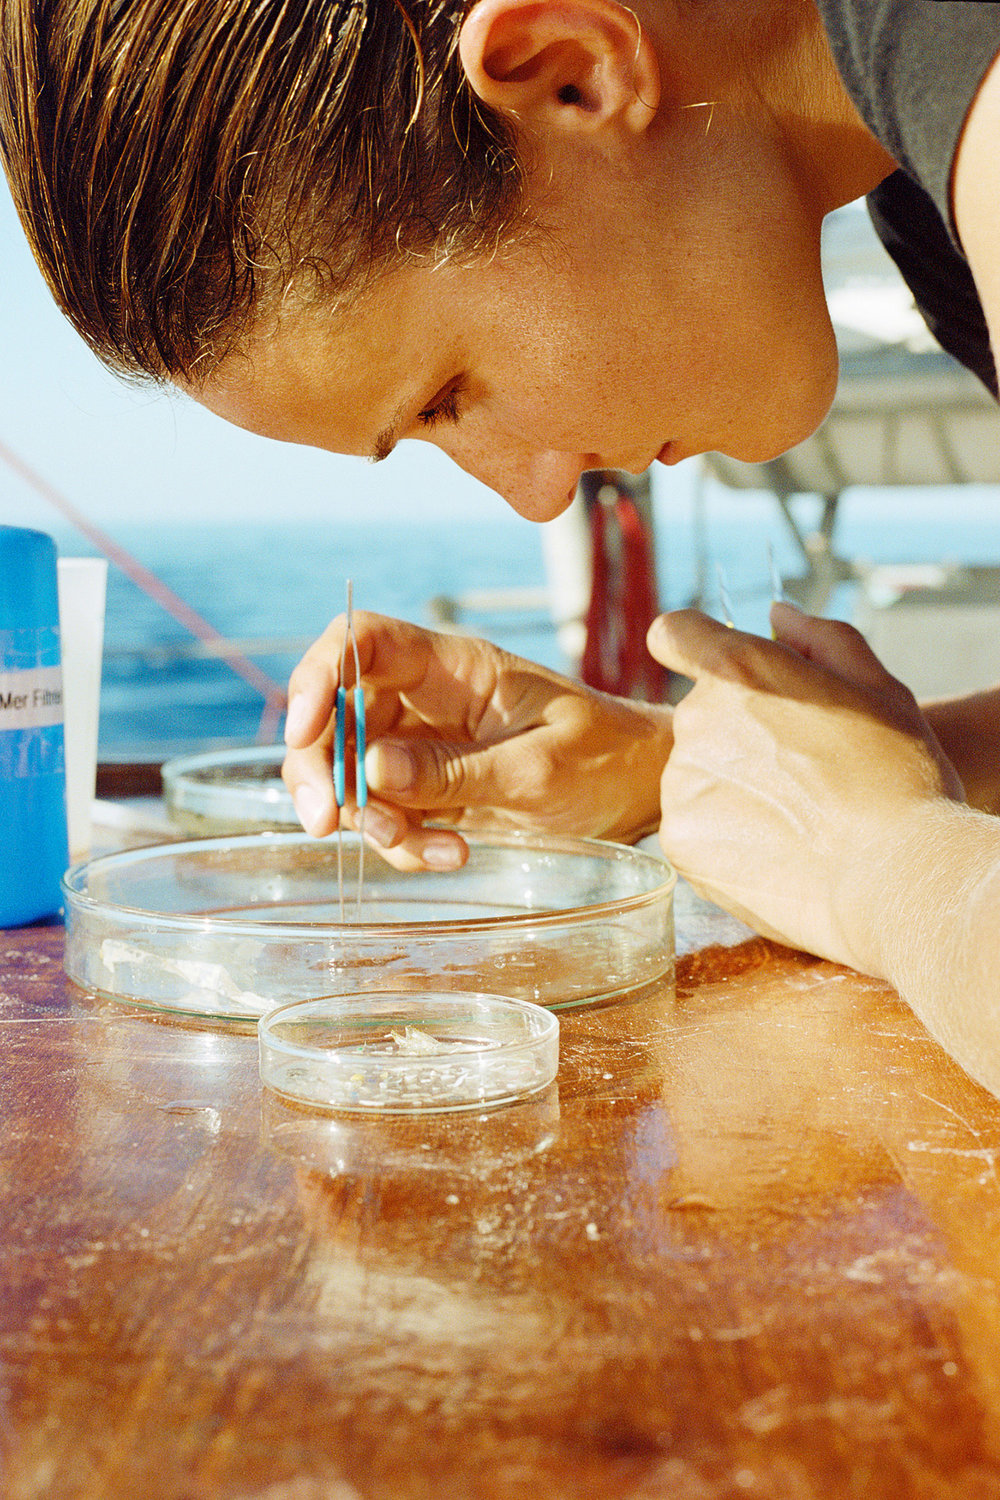 Plastic Pollution Sample Onboard Tara, Scientific Research Vessel, Mediterranean Sea, 2014